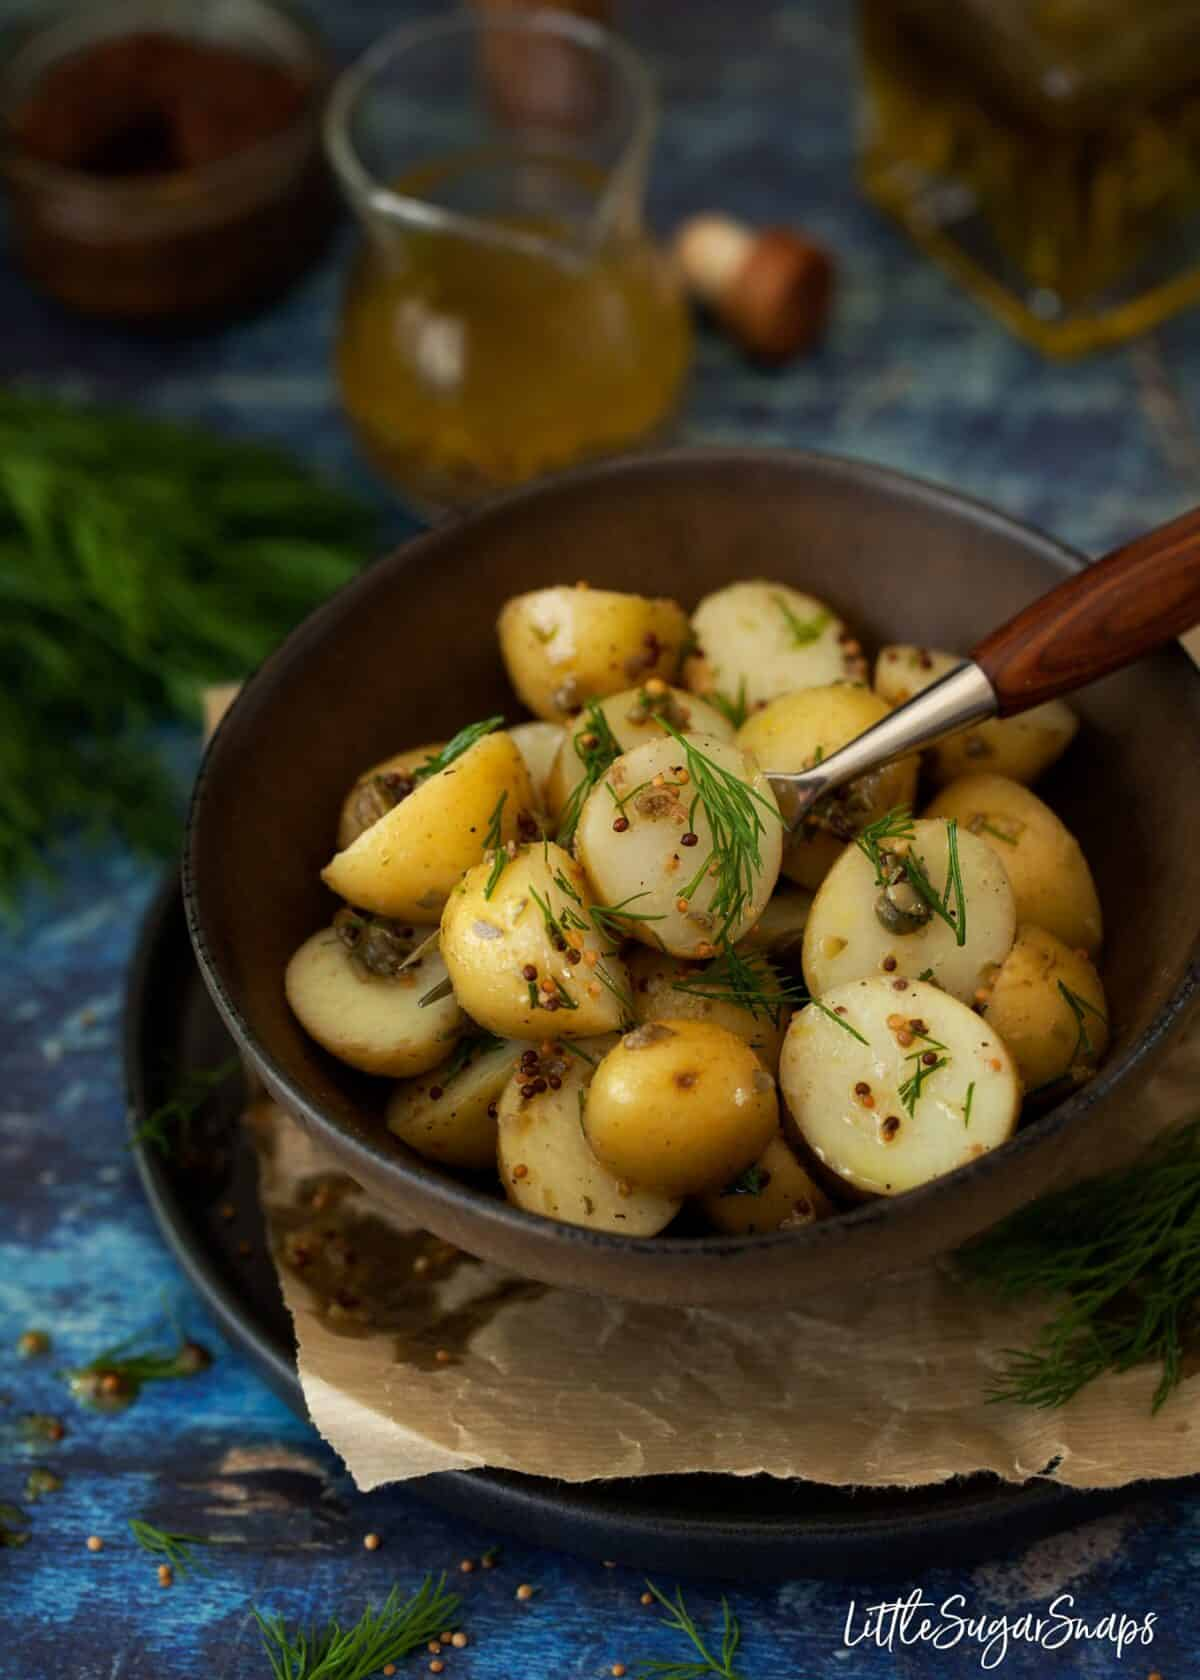 A bowl of potato salad with mustard vinaigrette and dill